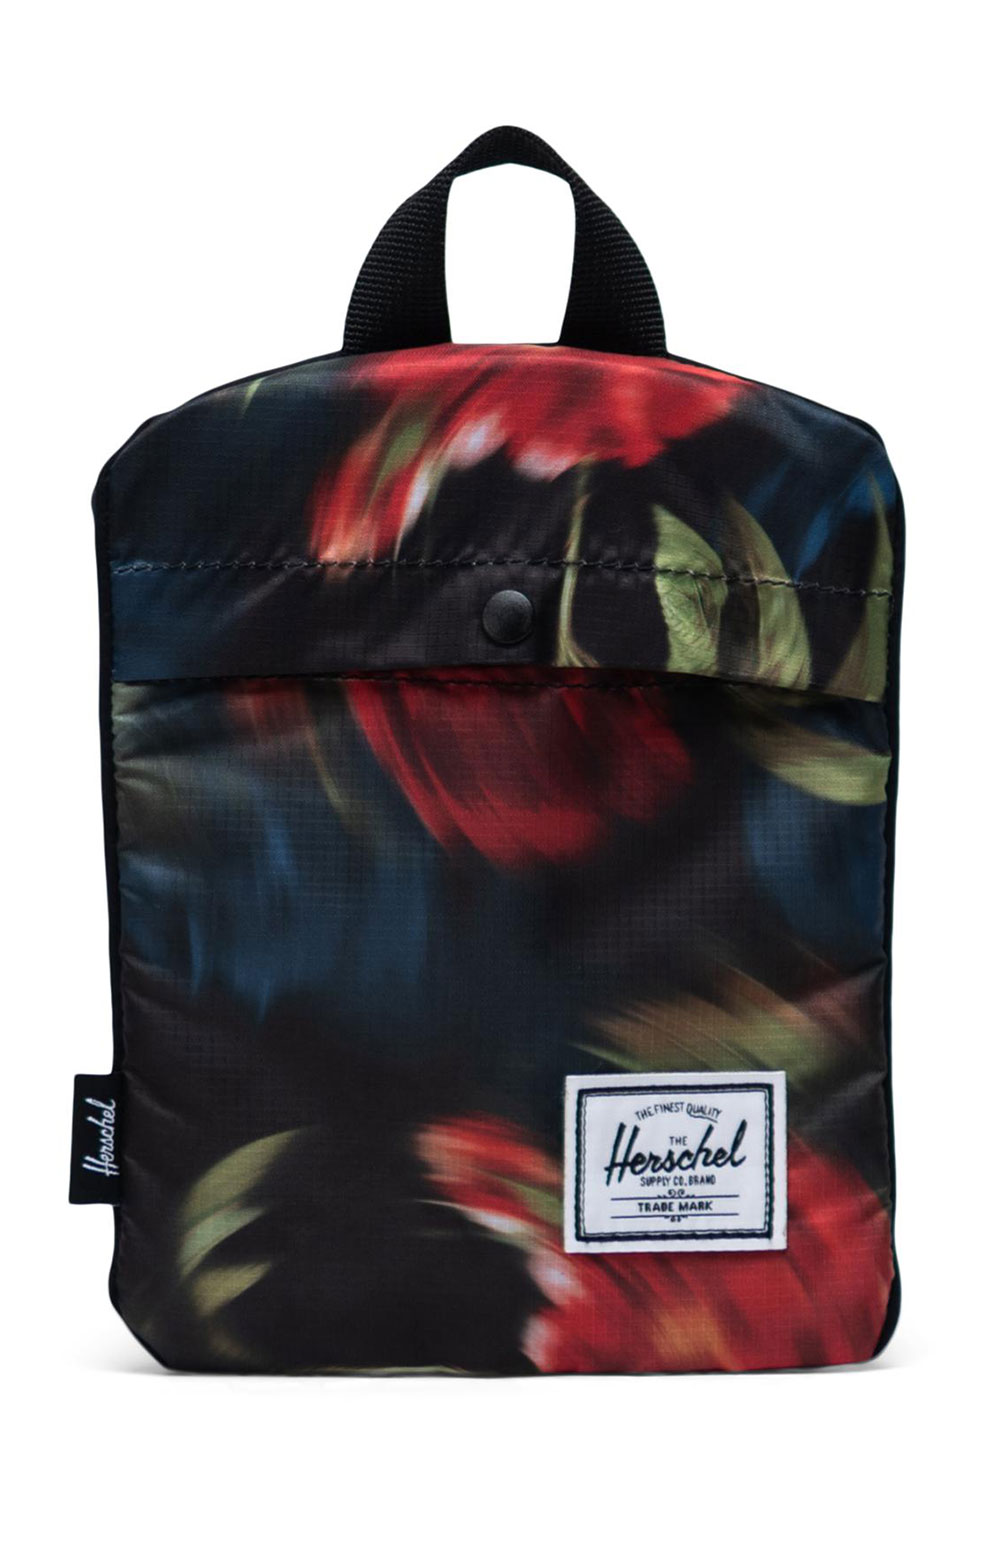 Packable Duffle Bag - Blurry Rose  3